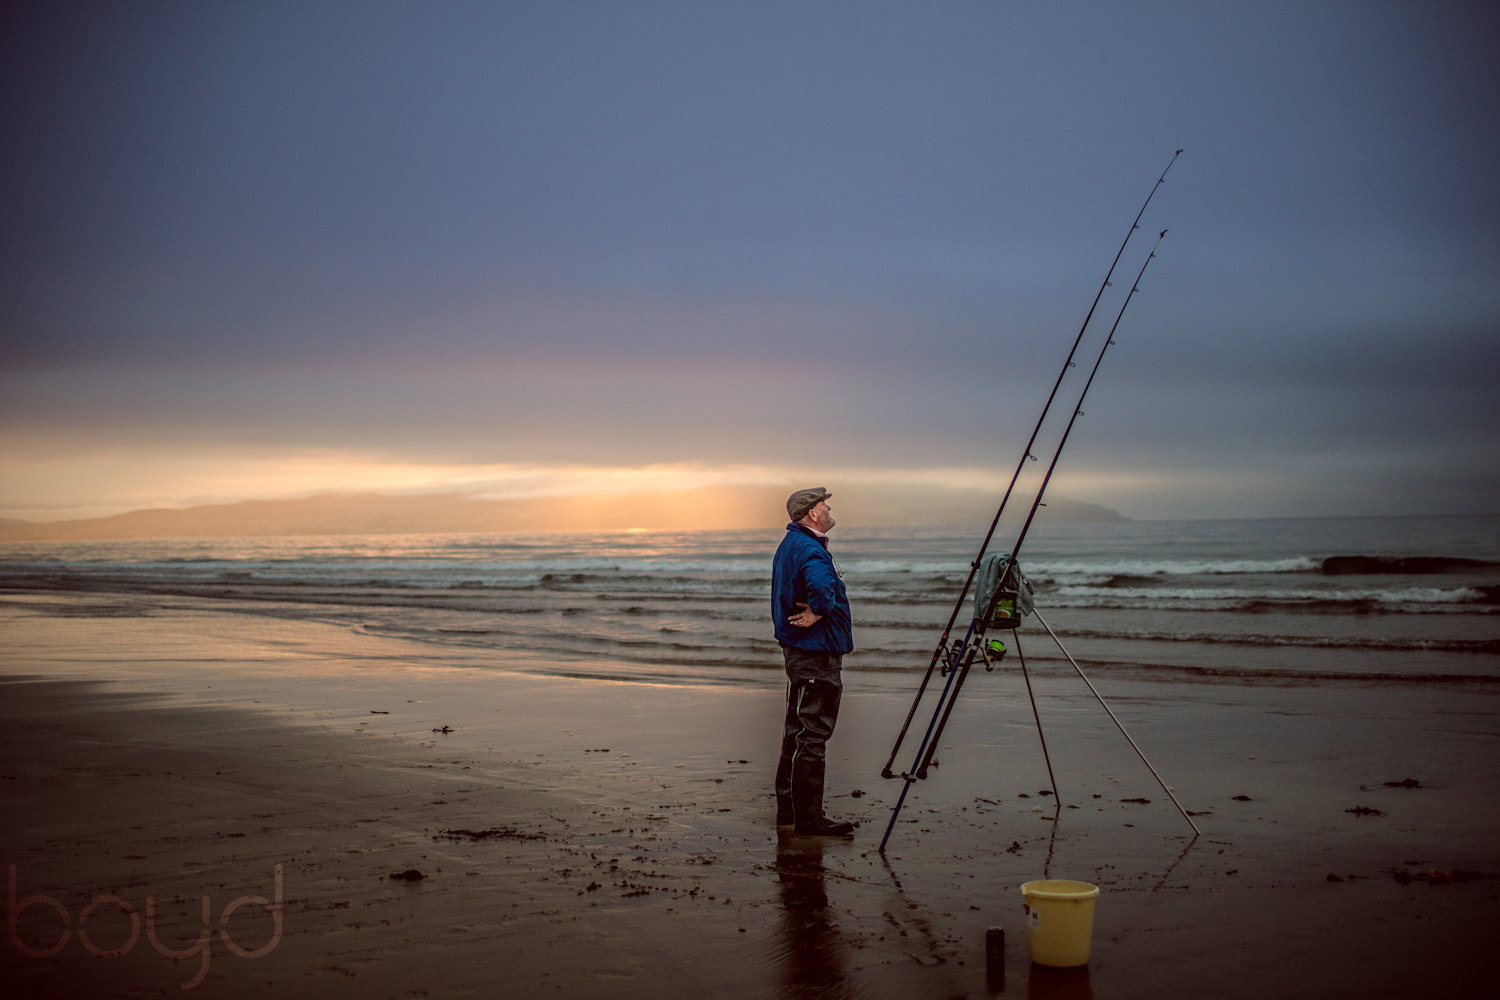 Photograph Waiting for the Sea Bass by Chris Boyd on 500px